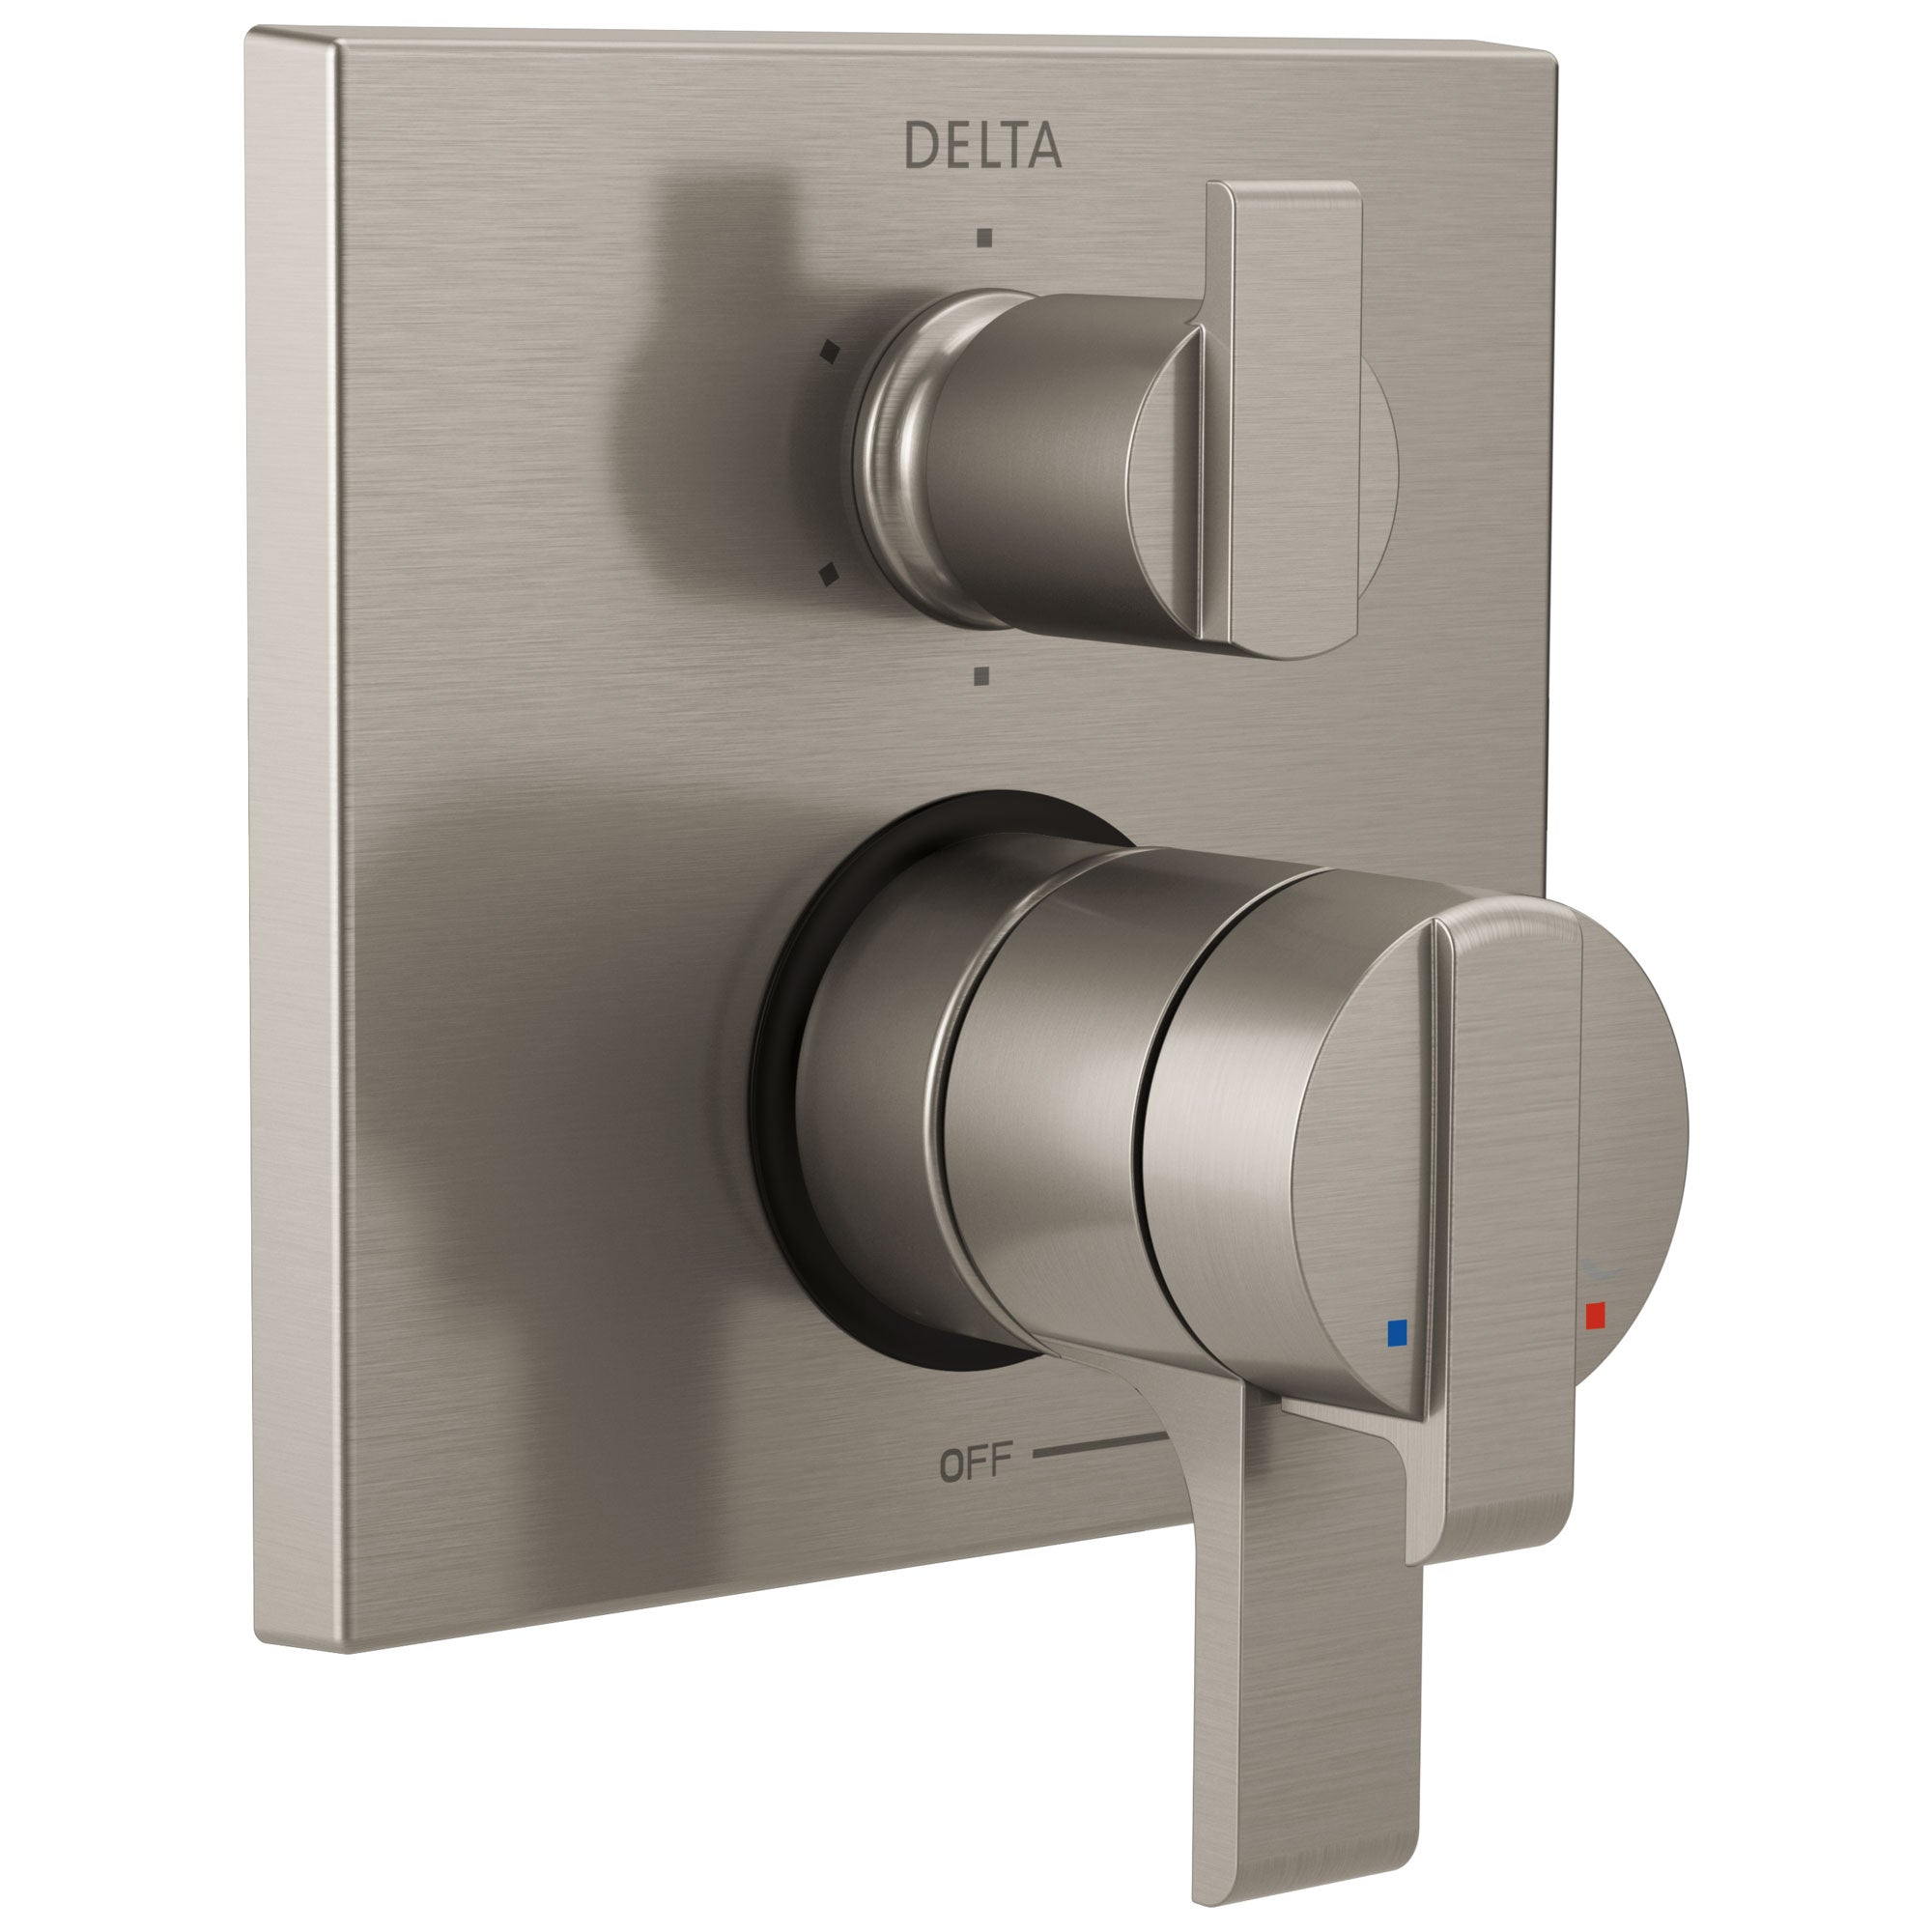 Delta Ara Collection Stainless Steel Finish Modern Shower Faucet Control Handle with 6-Setting Integrated Diverter Trim (Requires Valve) DT27967SS